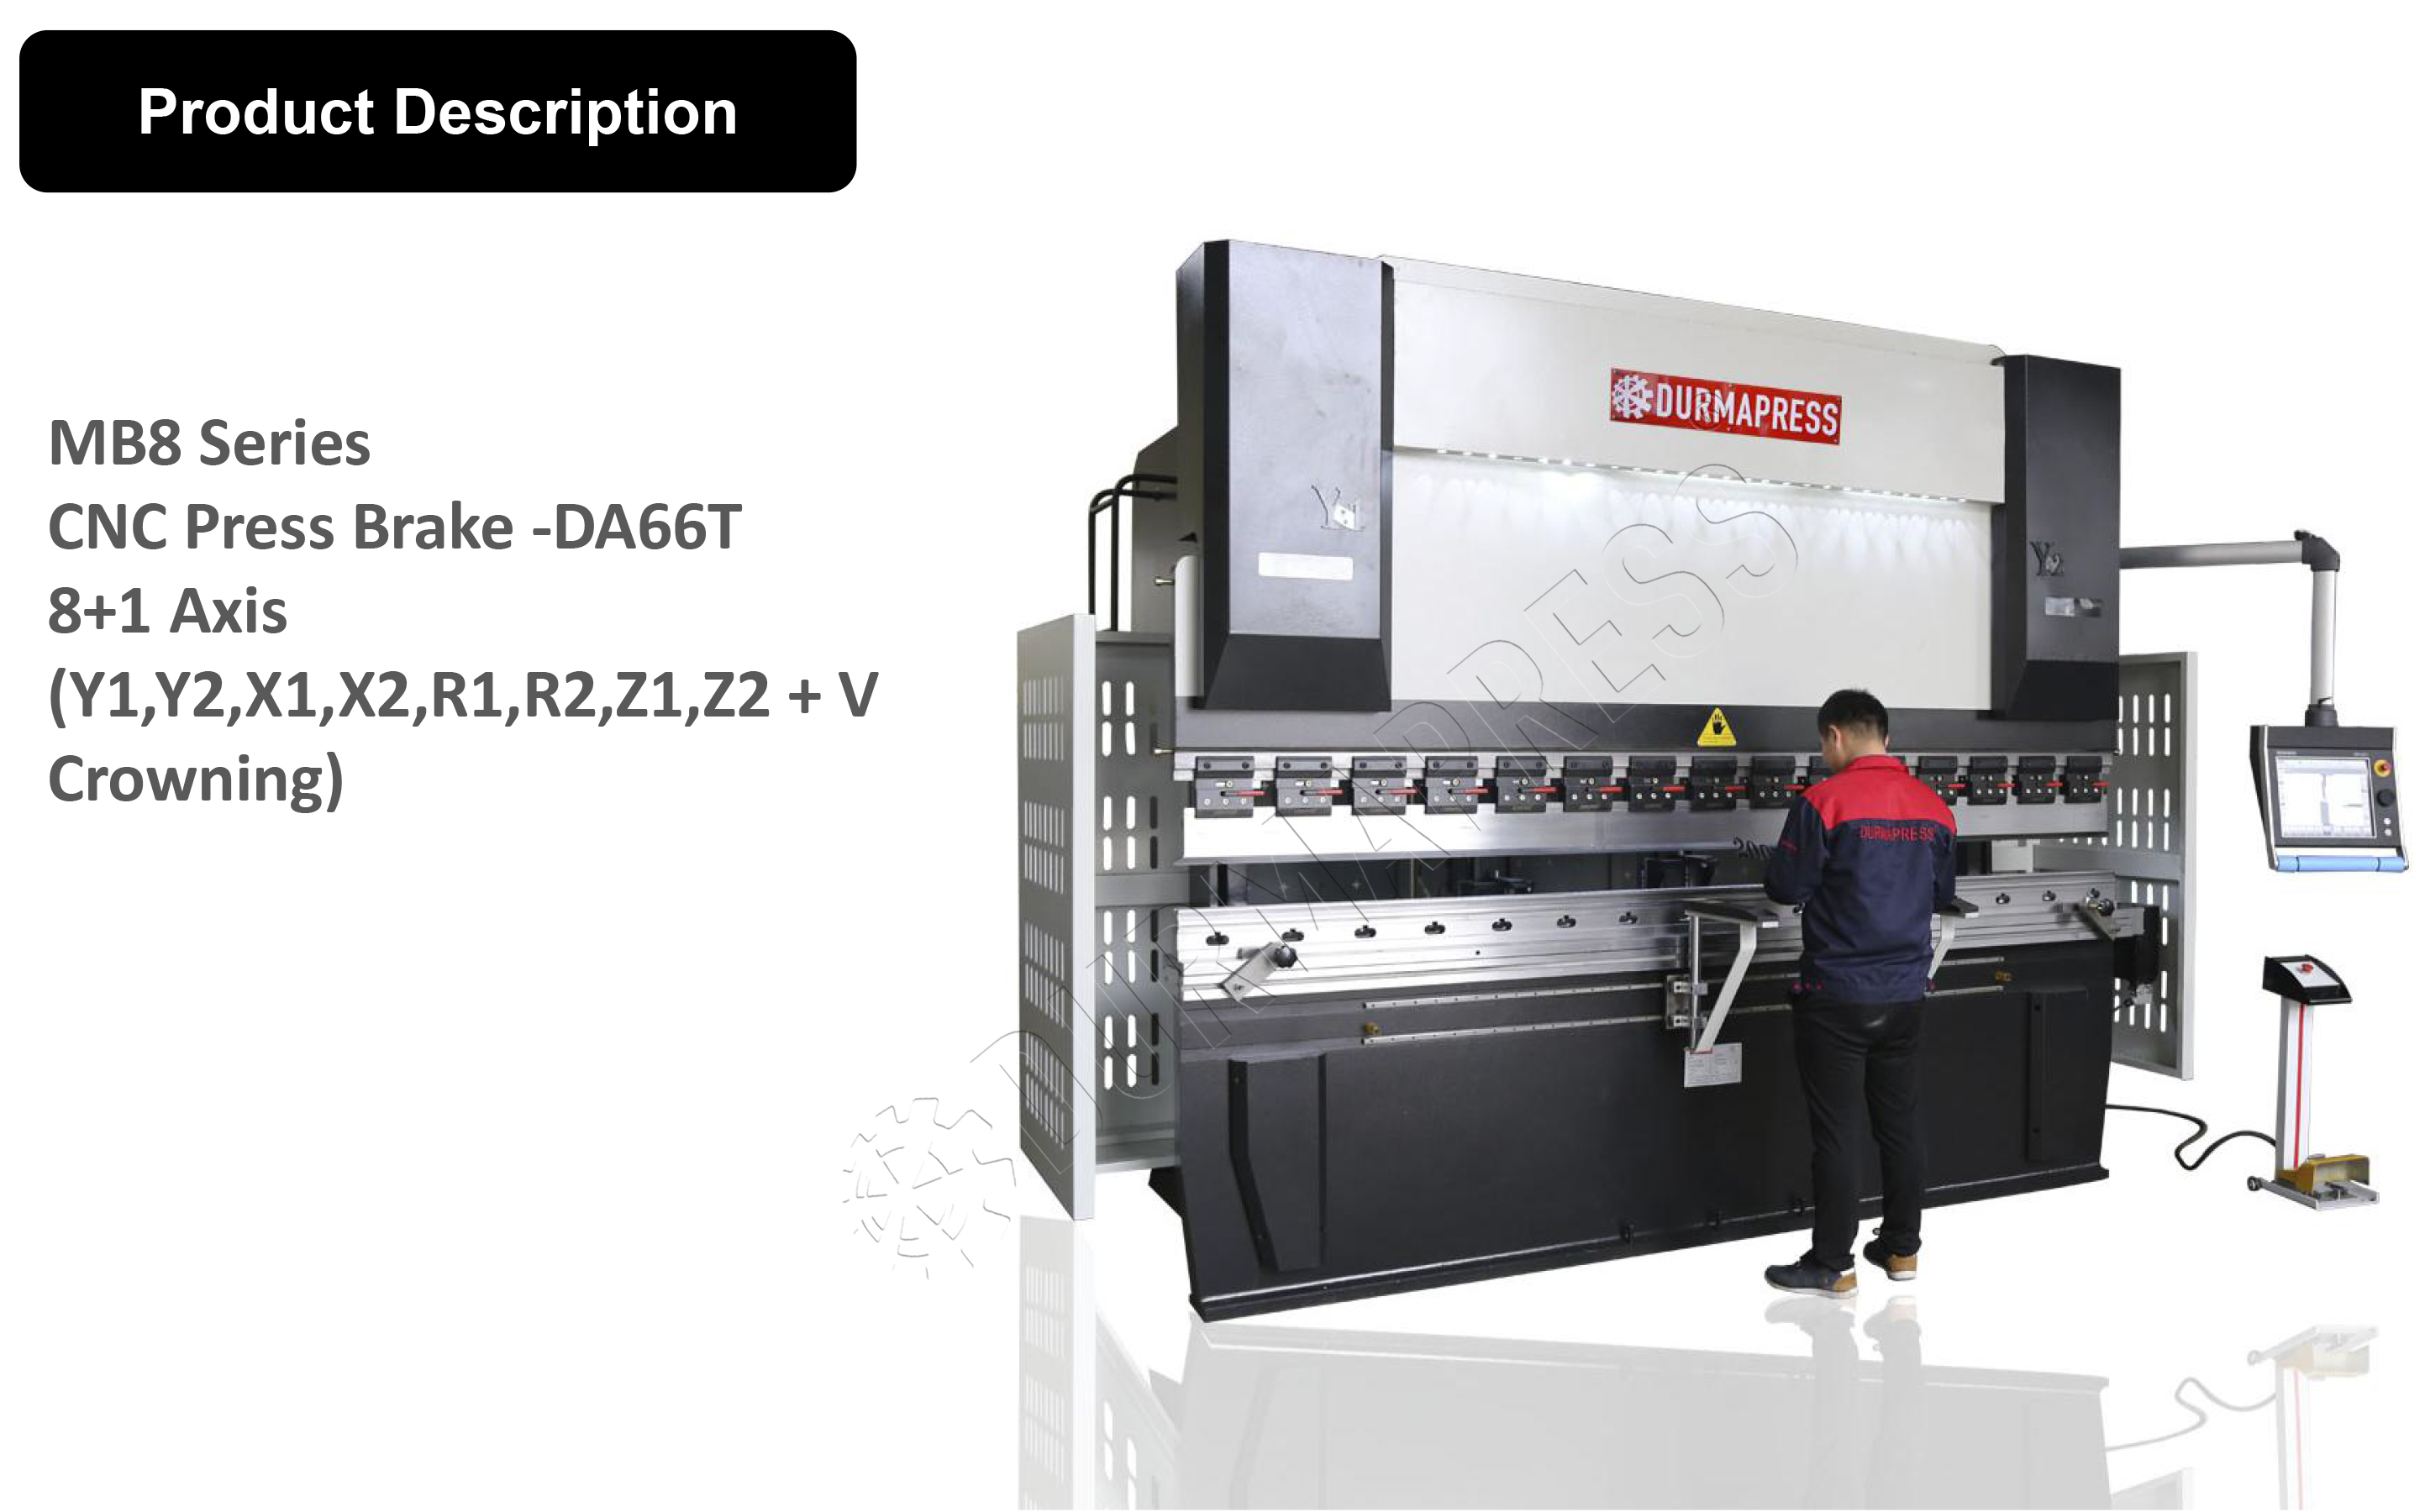 What is CNC Press Brake